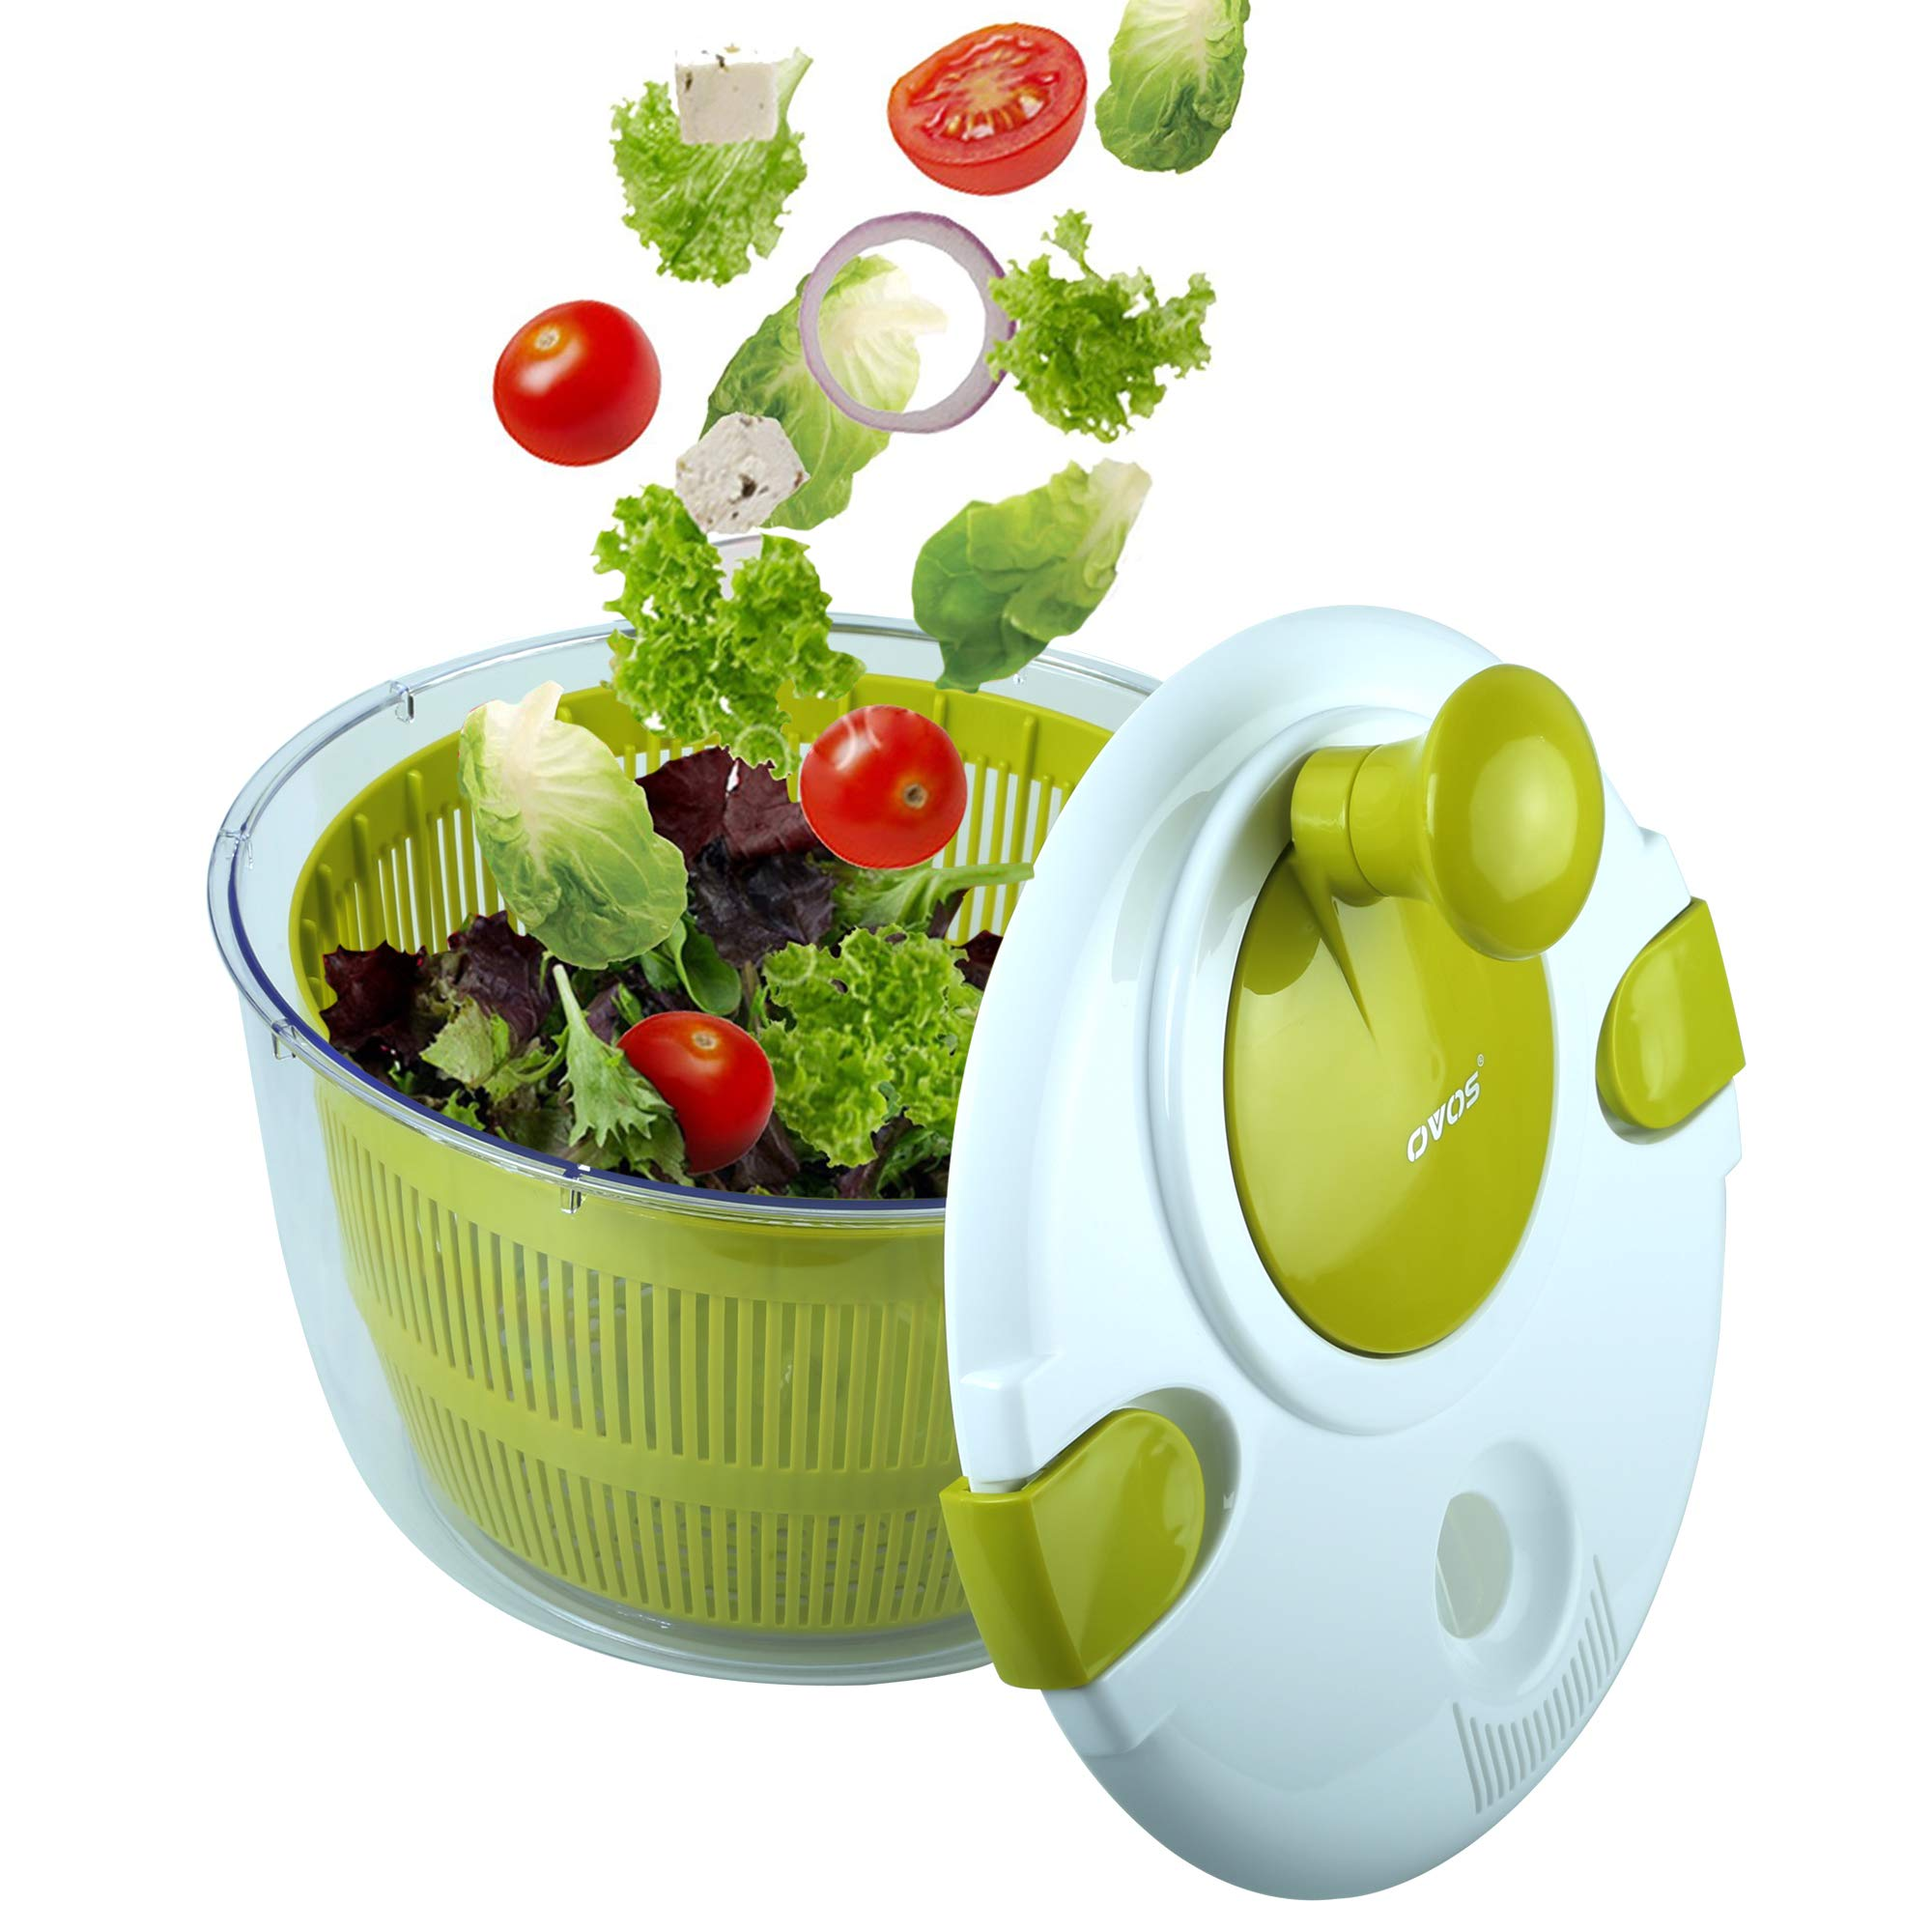 OVOS Salad Spinner Large 5 Quarts Fruits and Vegetables Dryer Quick Dry Design BPA Free Dry off and Drain Lettuce and Vegetable with Ease for Tastier Salads and Faster Food Prep by OVOS